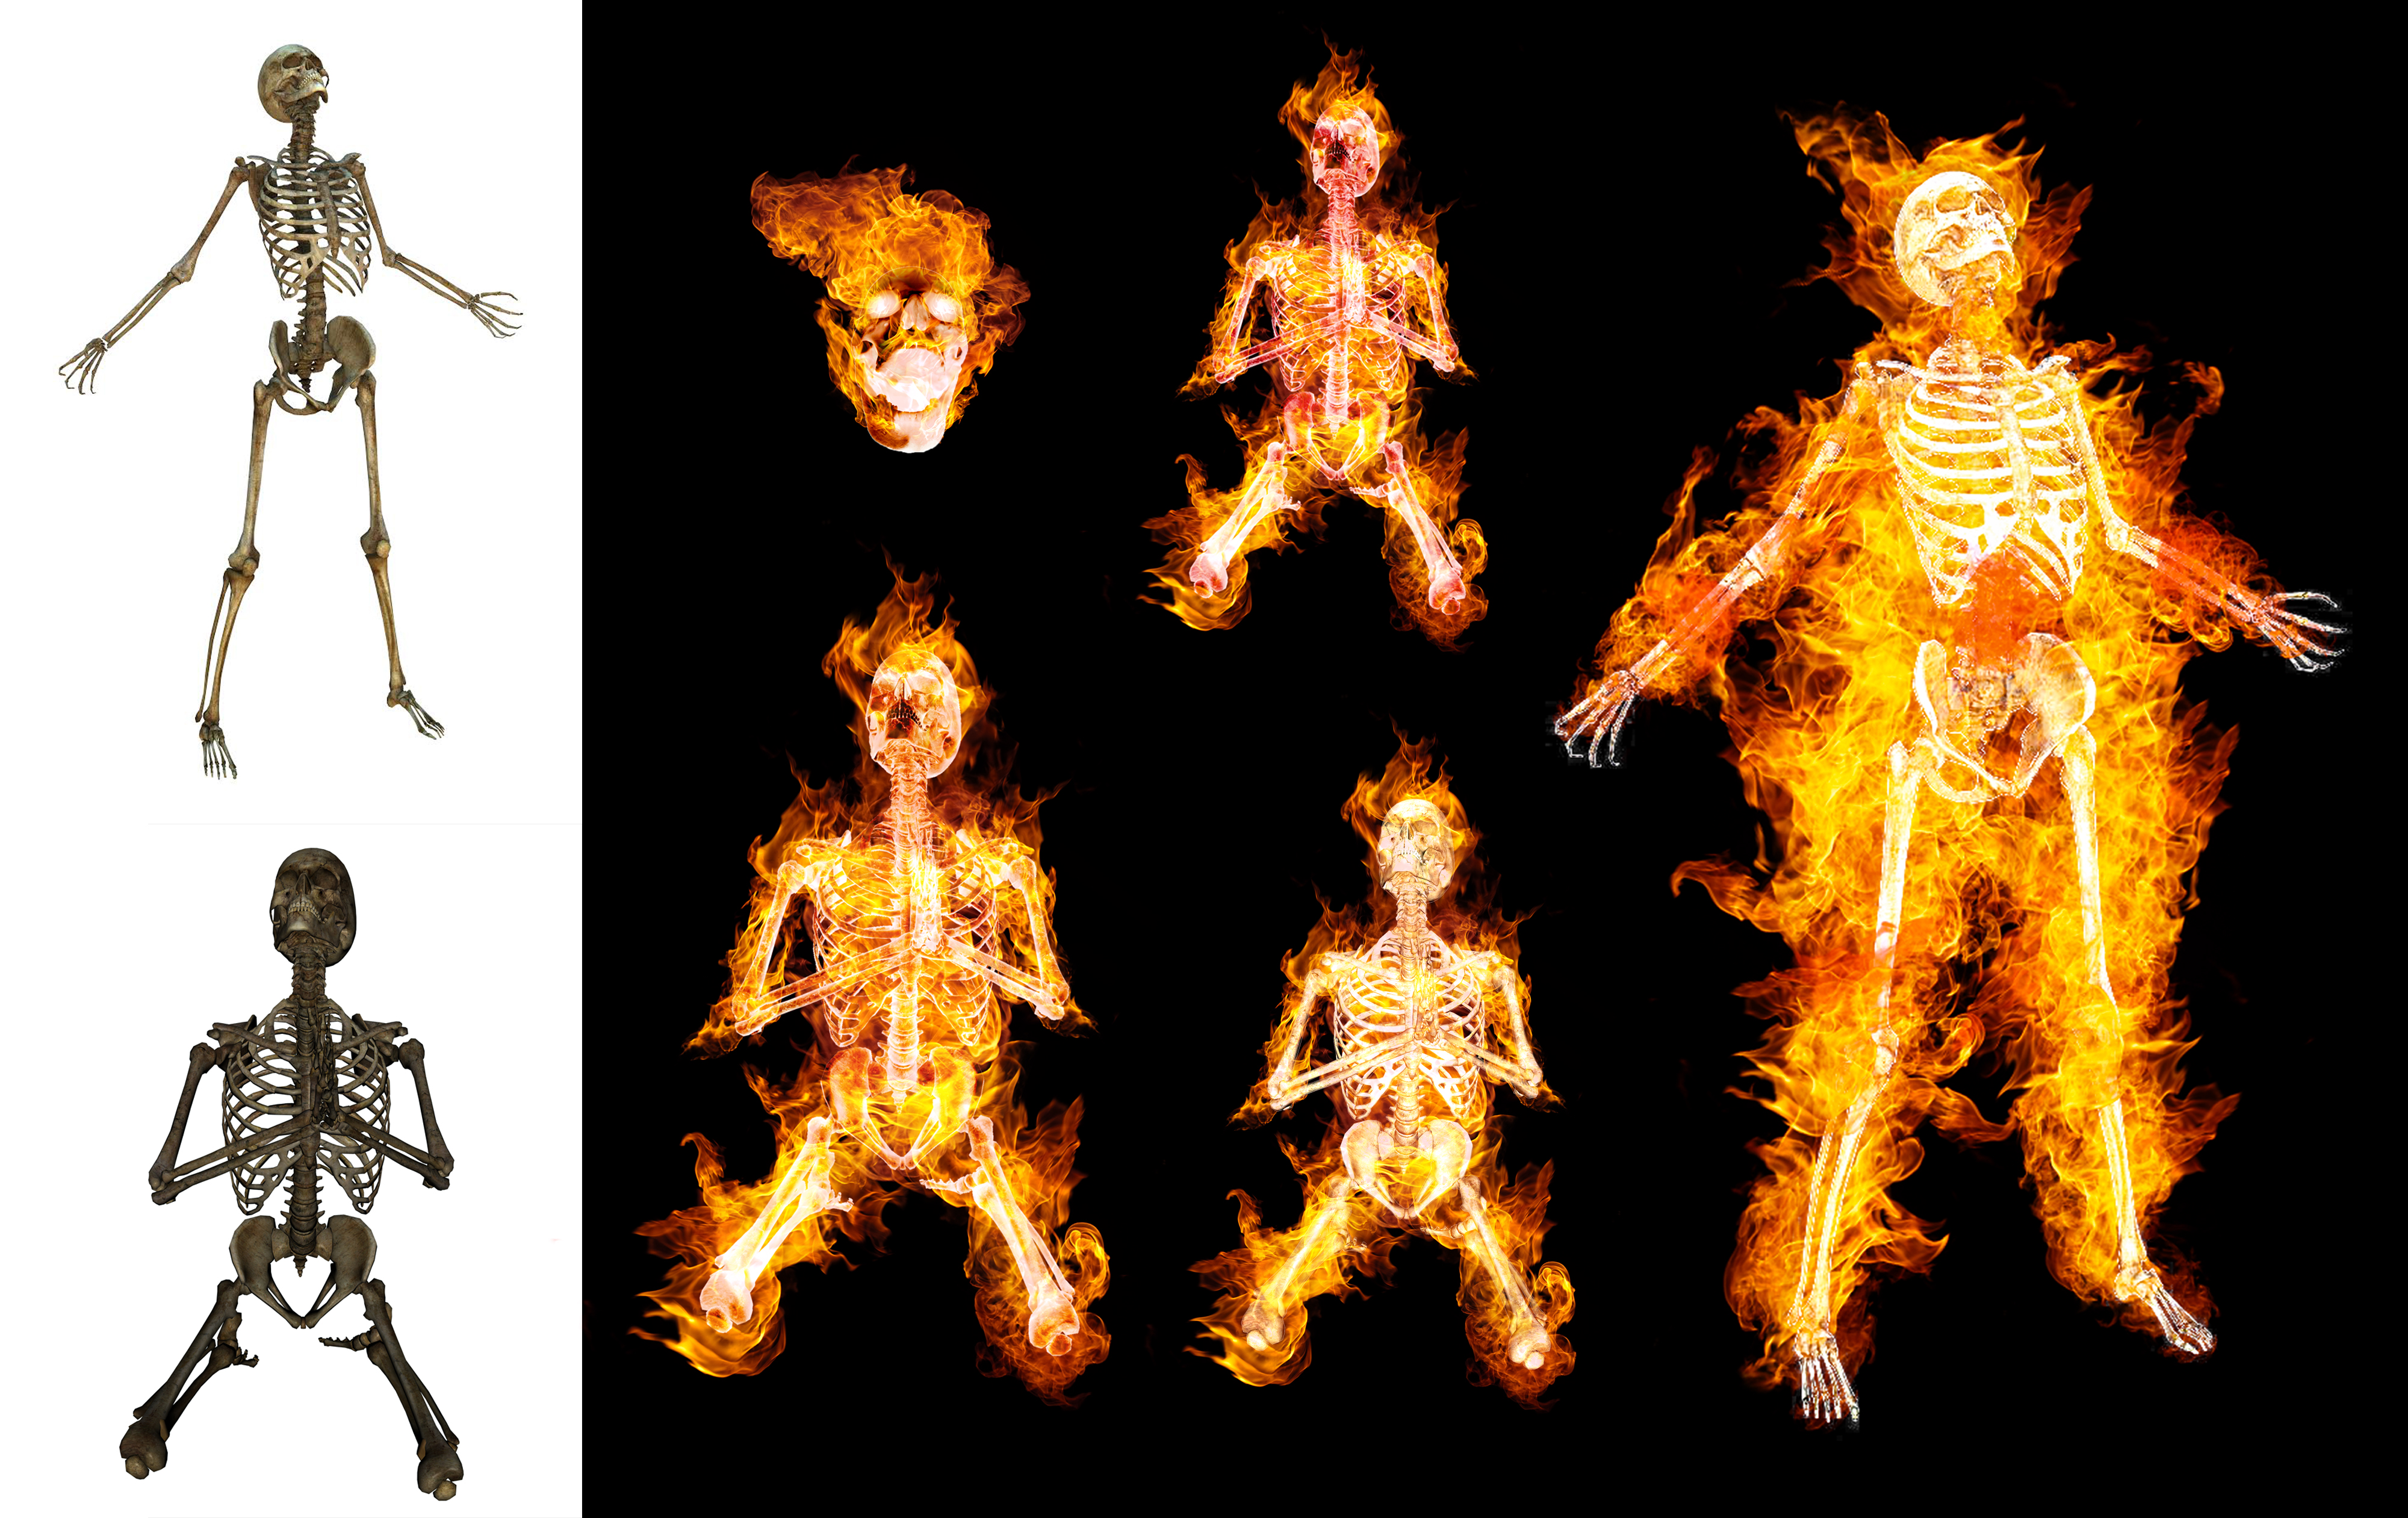 I will add a fire flame effect for your photo